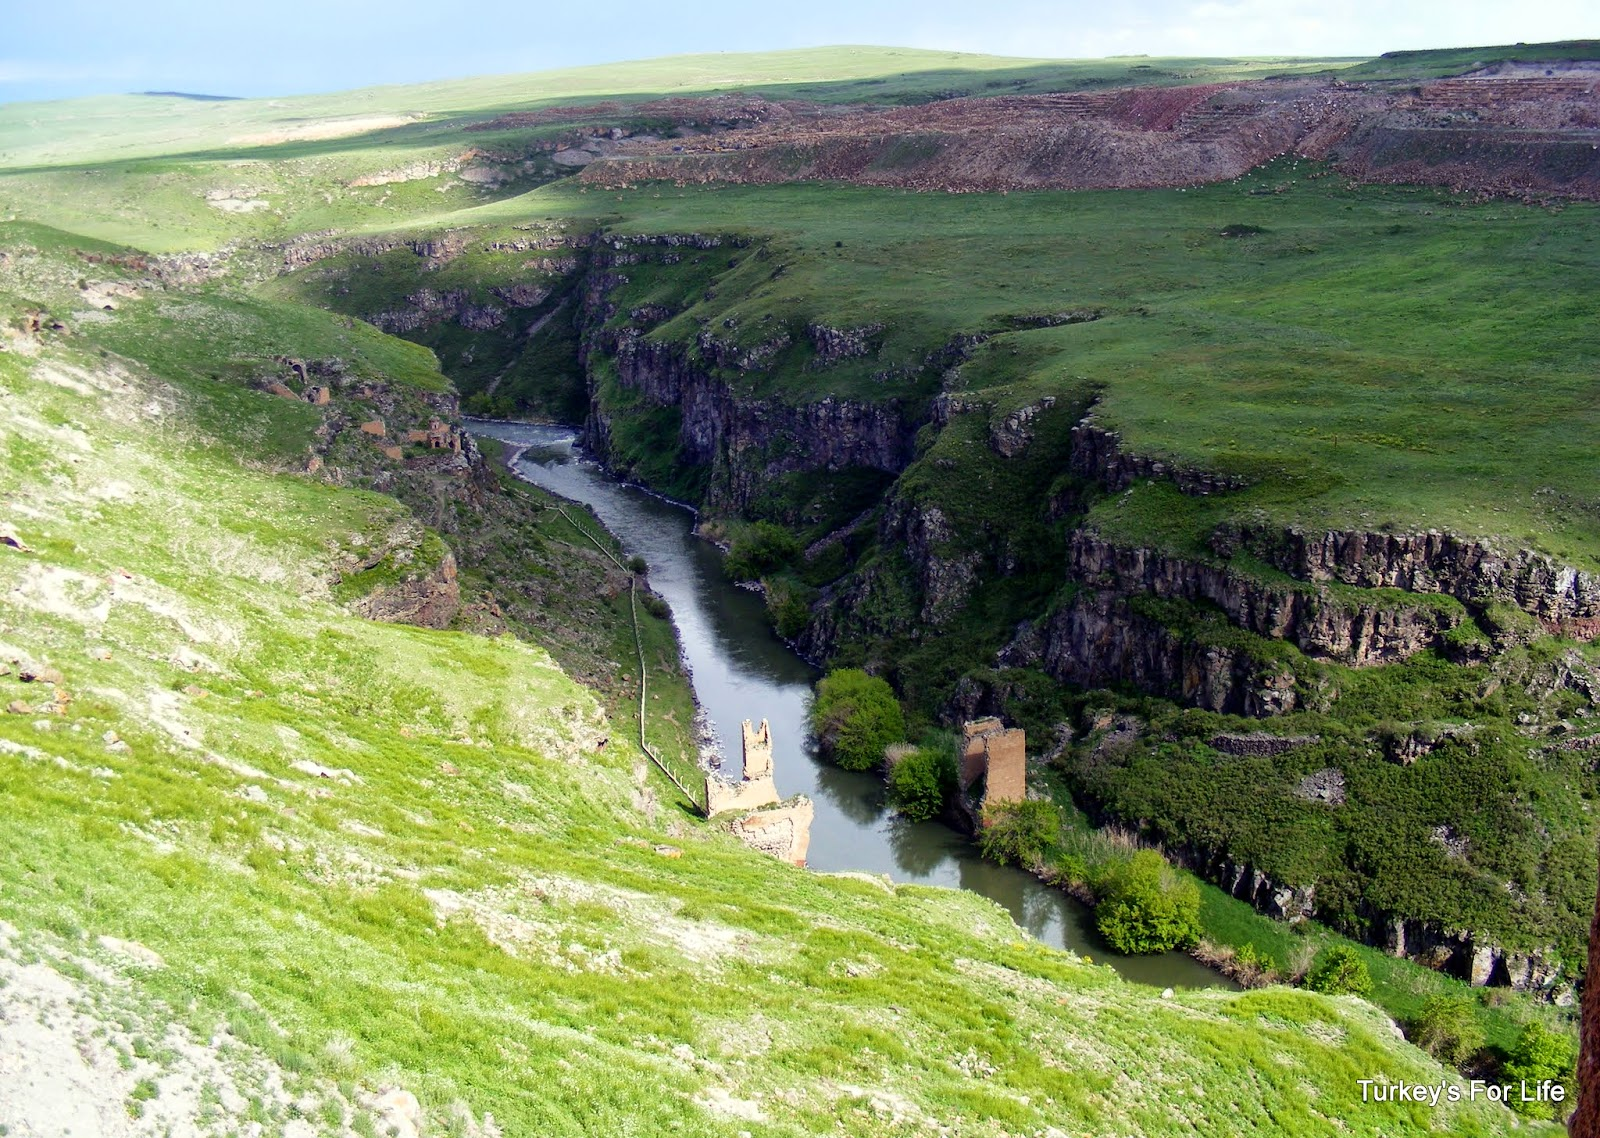 Turkish-Armenian Border At Ani, Kars, East Turkey